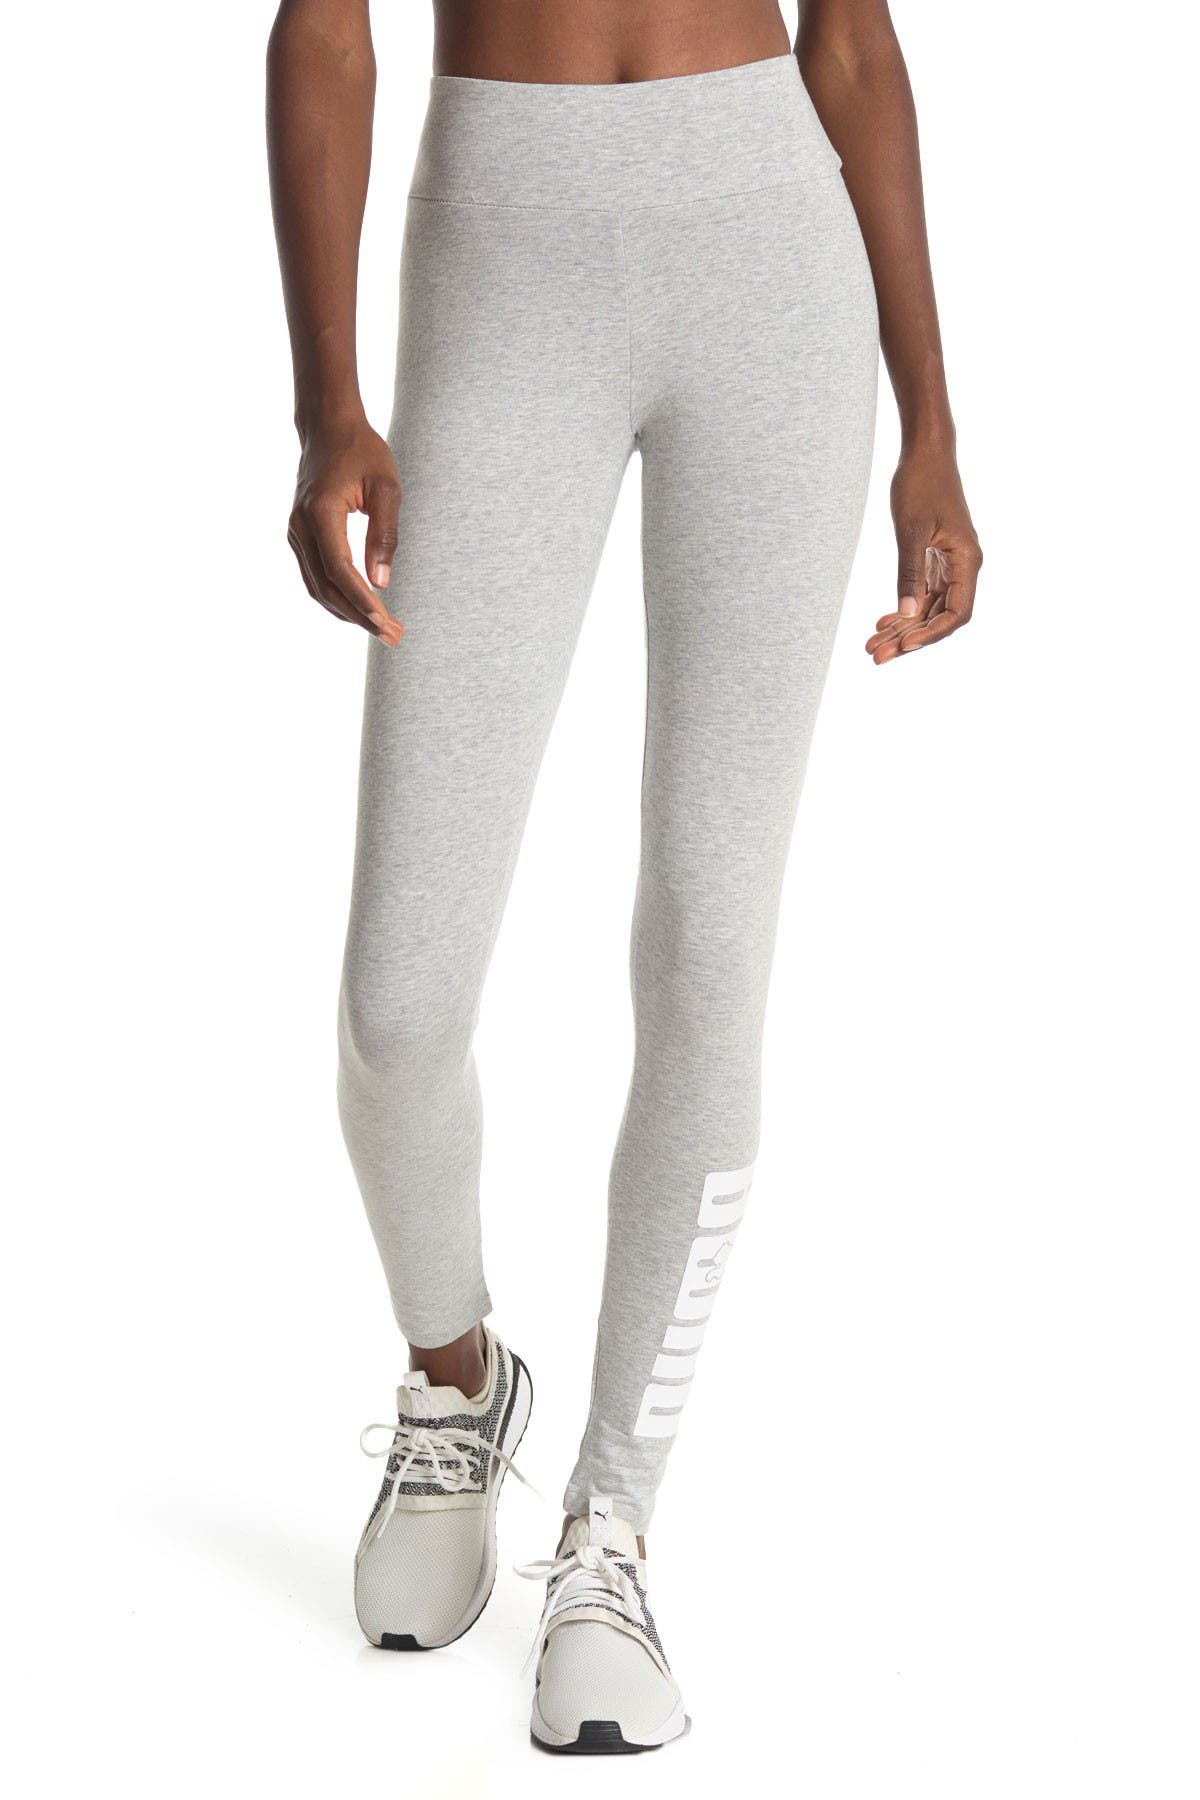 Image of PUMA Rebel Leggings